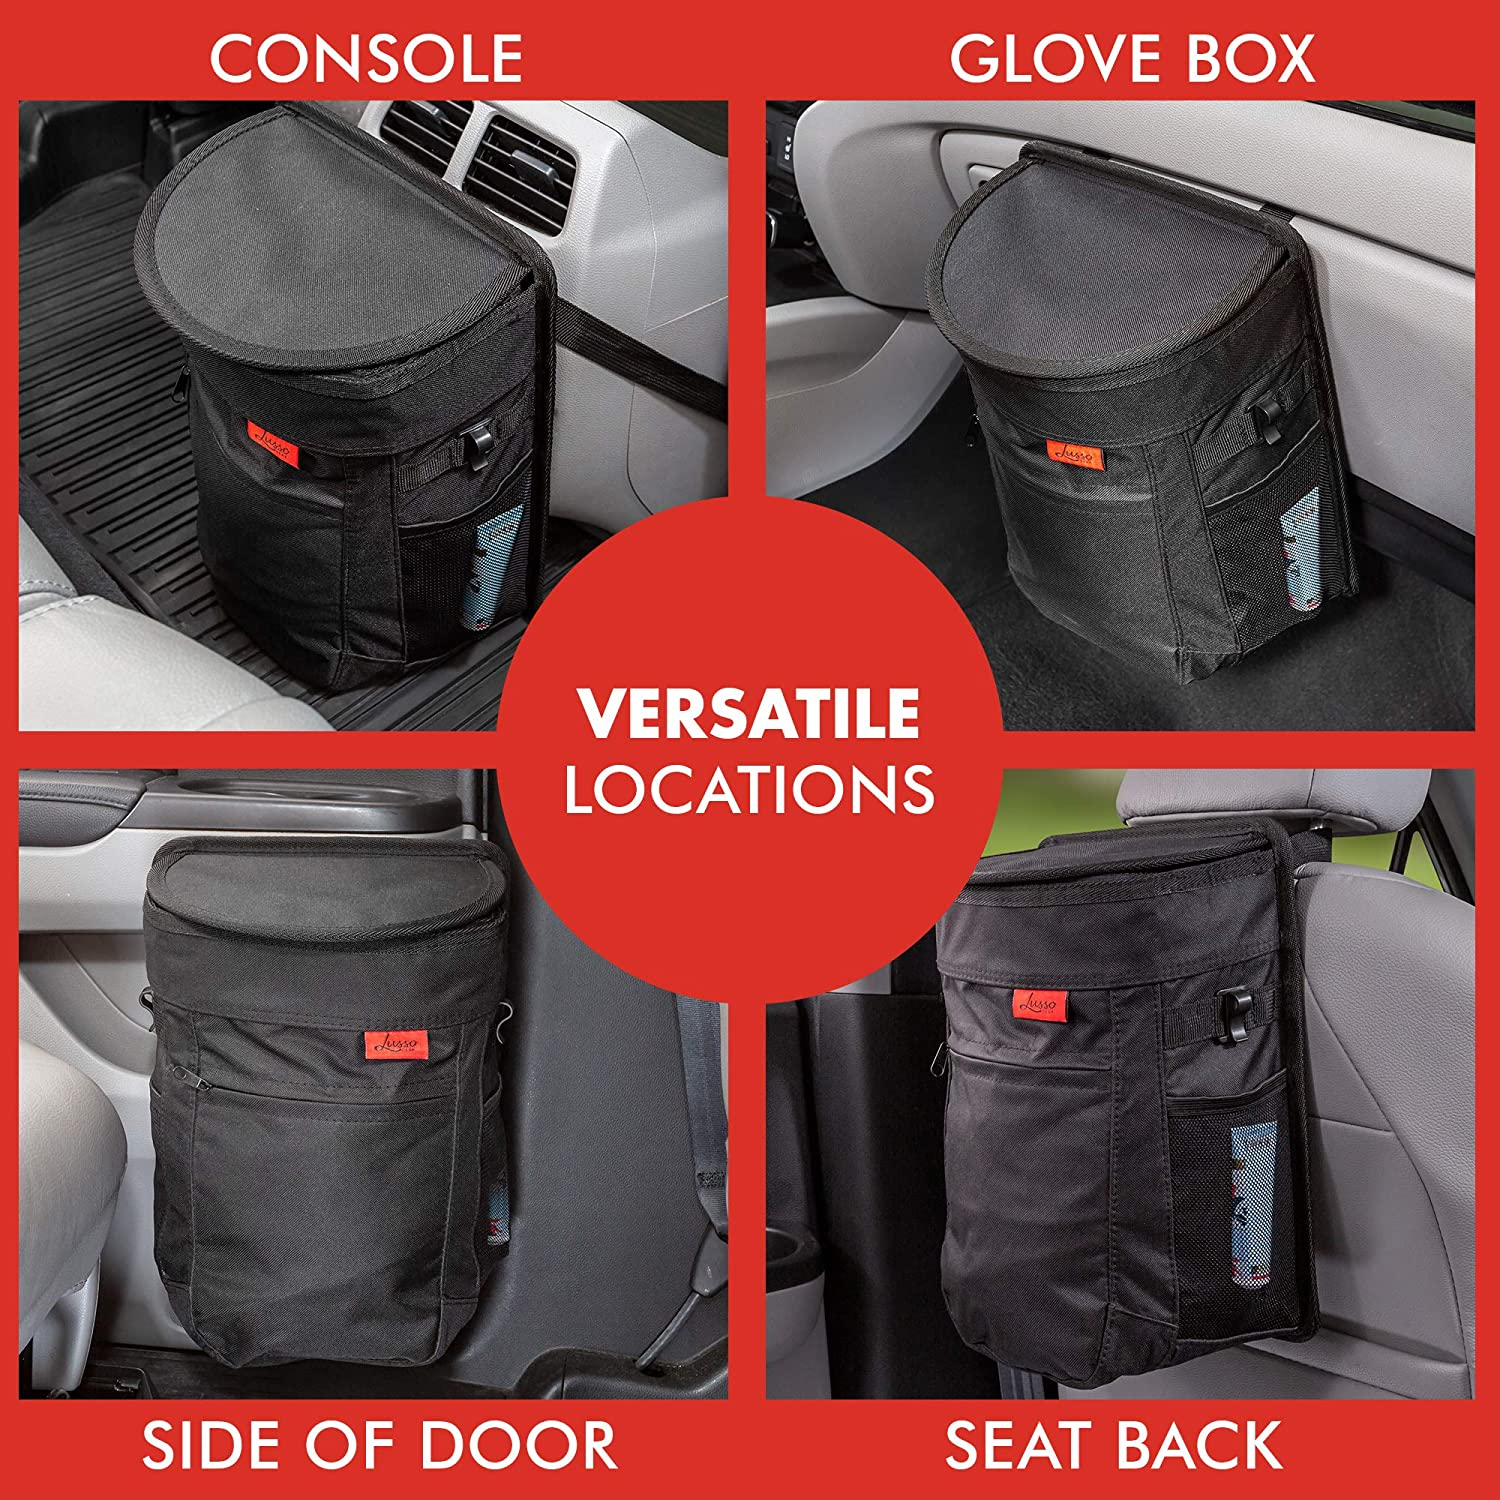 Removable Liner /& Storage Pockets Keeps Your Truck Compact 2.5 Gallon Hanging Garbage Bin with Odor Blocking Technology Minivan /& SUV Looking Sharp /& Smelling Fresh Spill-Proof Car Trash Can